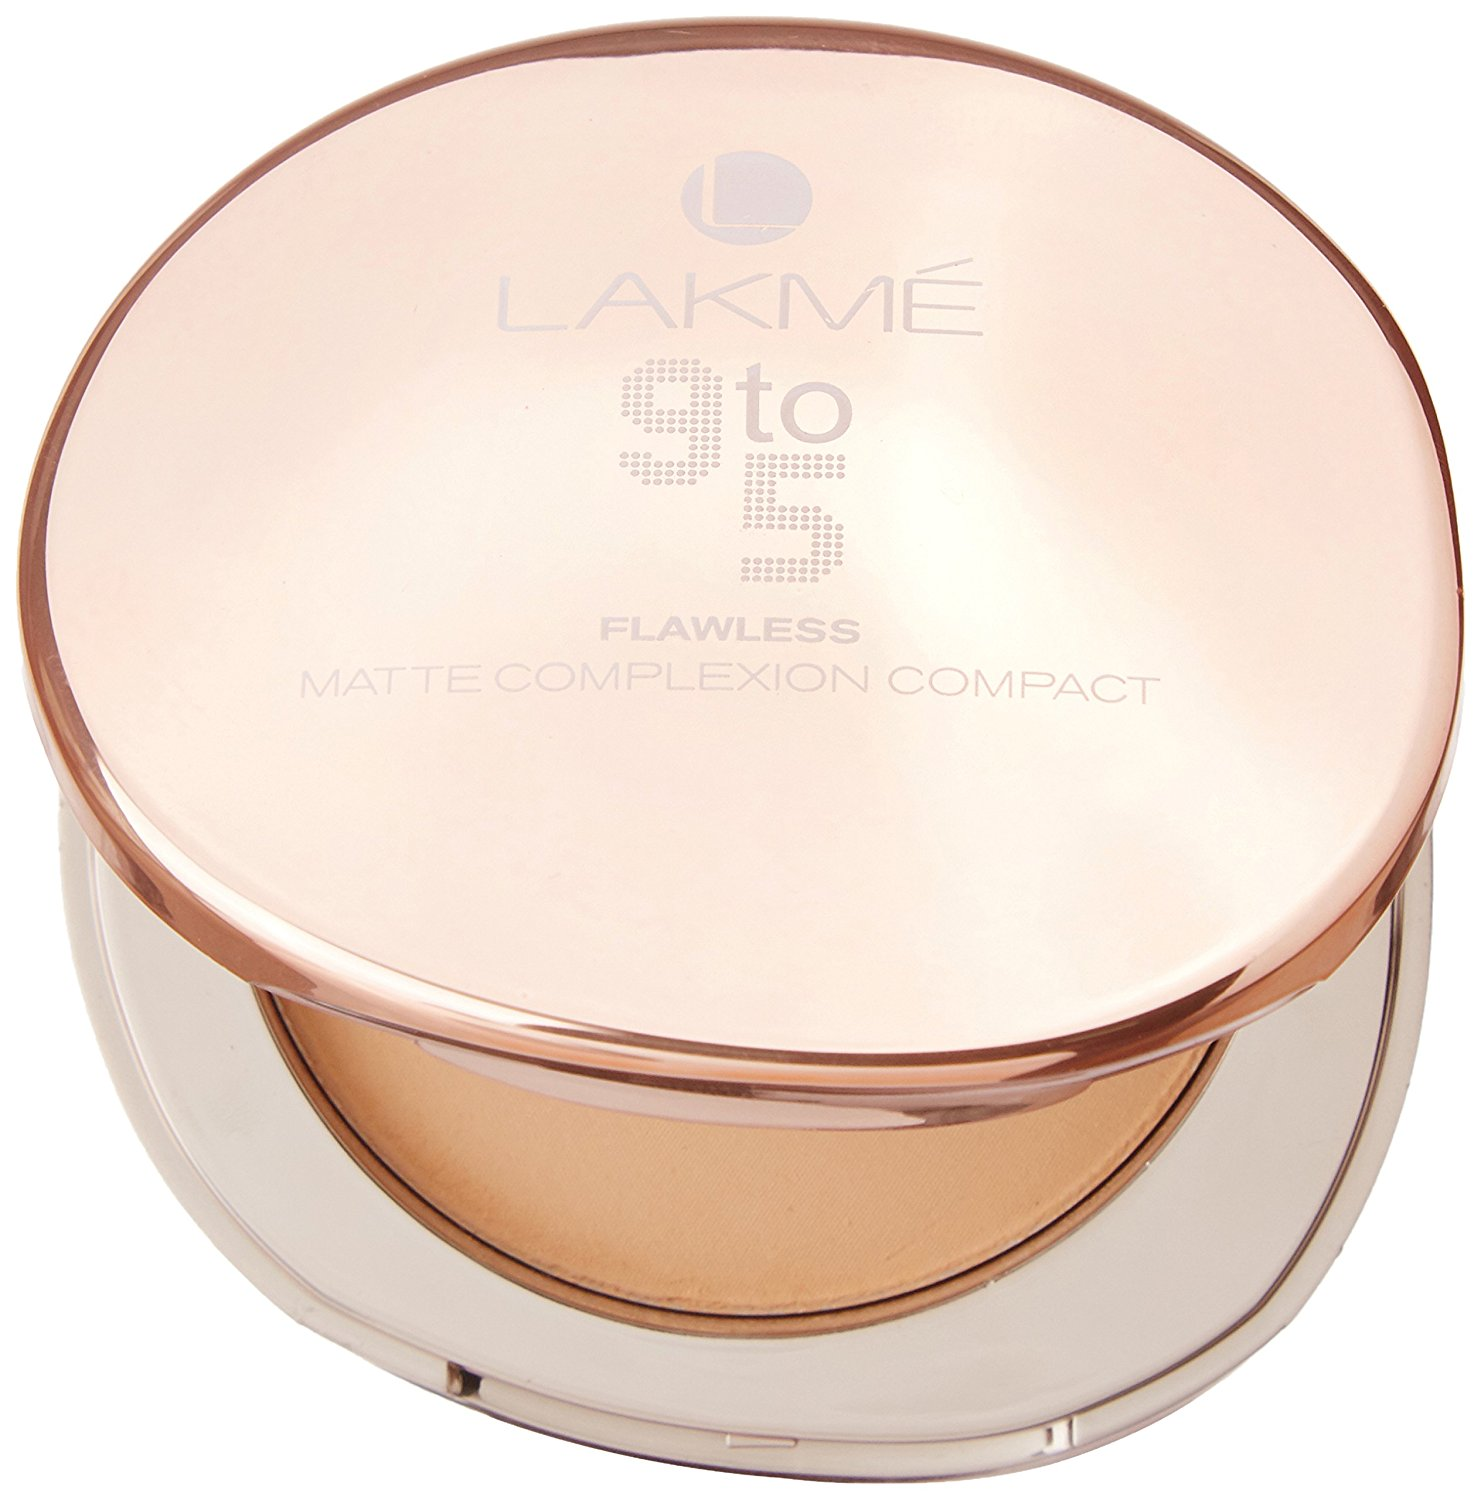 Fake title 9 to 5. Review on Lakme 9 to 5 Flawless Matte Complexion Compact